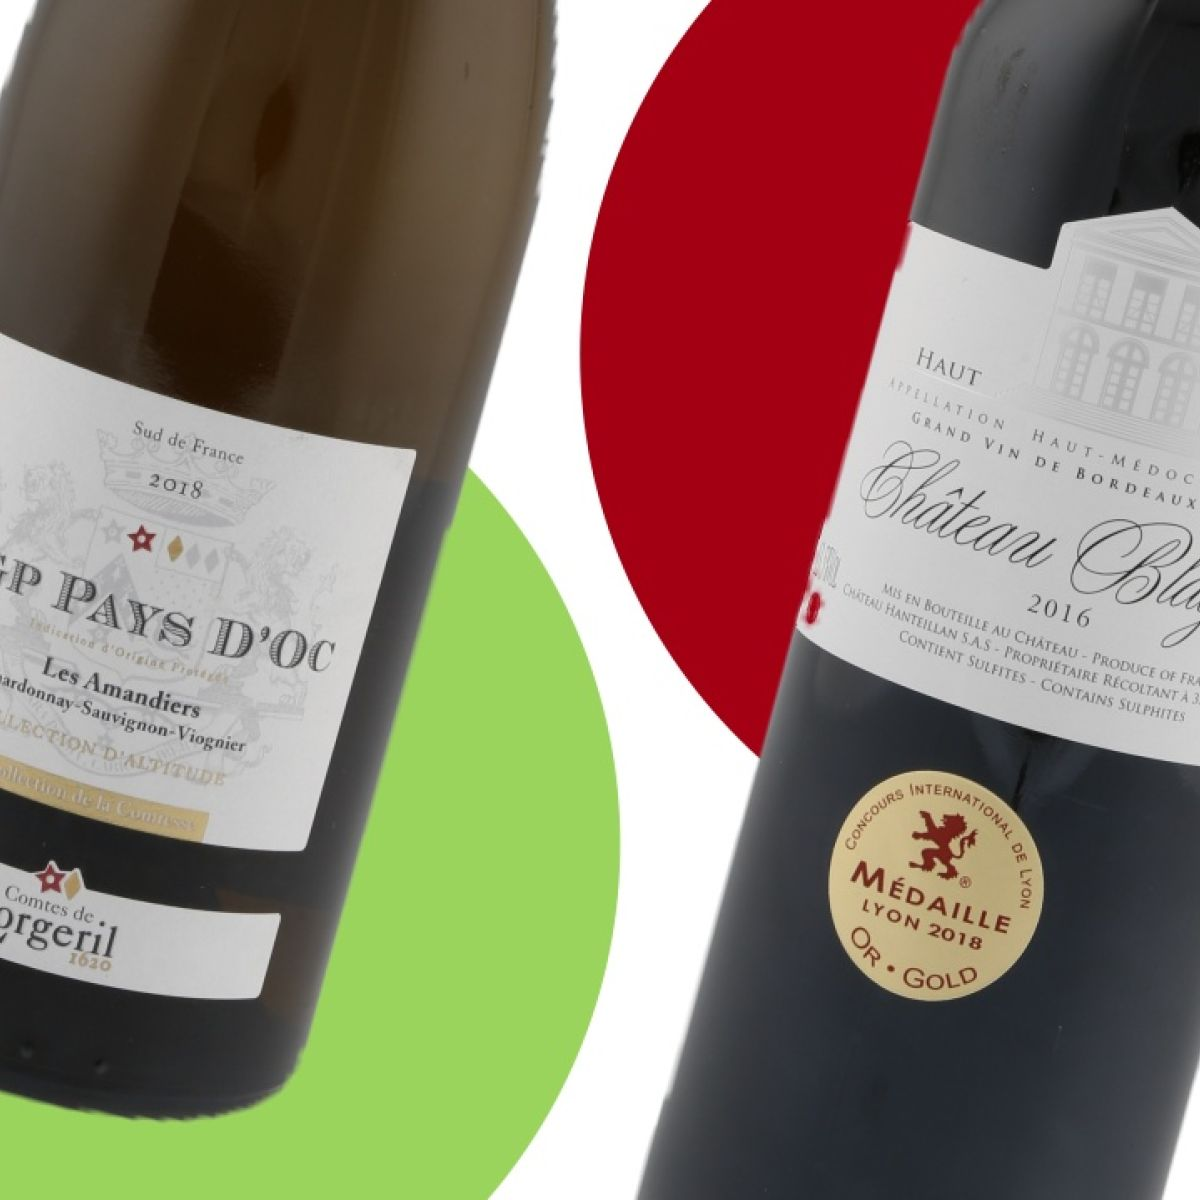 Two Cracking Wines From Lidl S Christmas Line Up